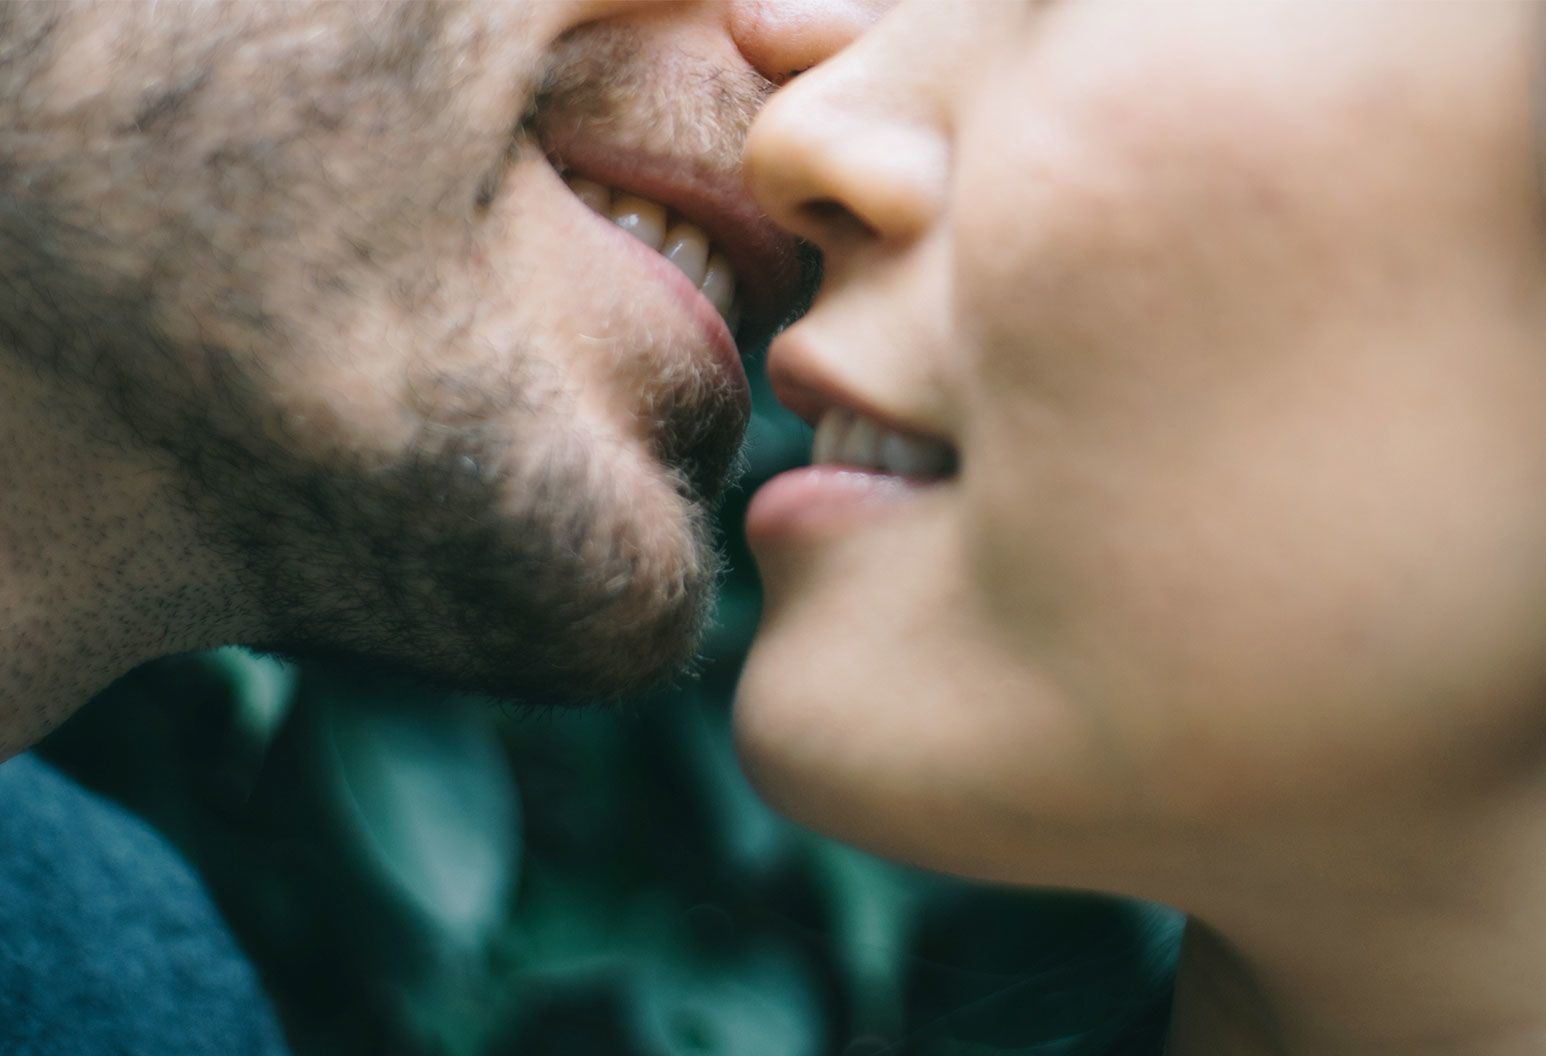 A man with a patchy, scruffy, beard is smiling as he brings his face close to a woman's lips, that also reveal a smile.